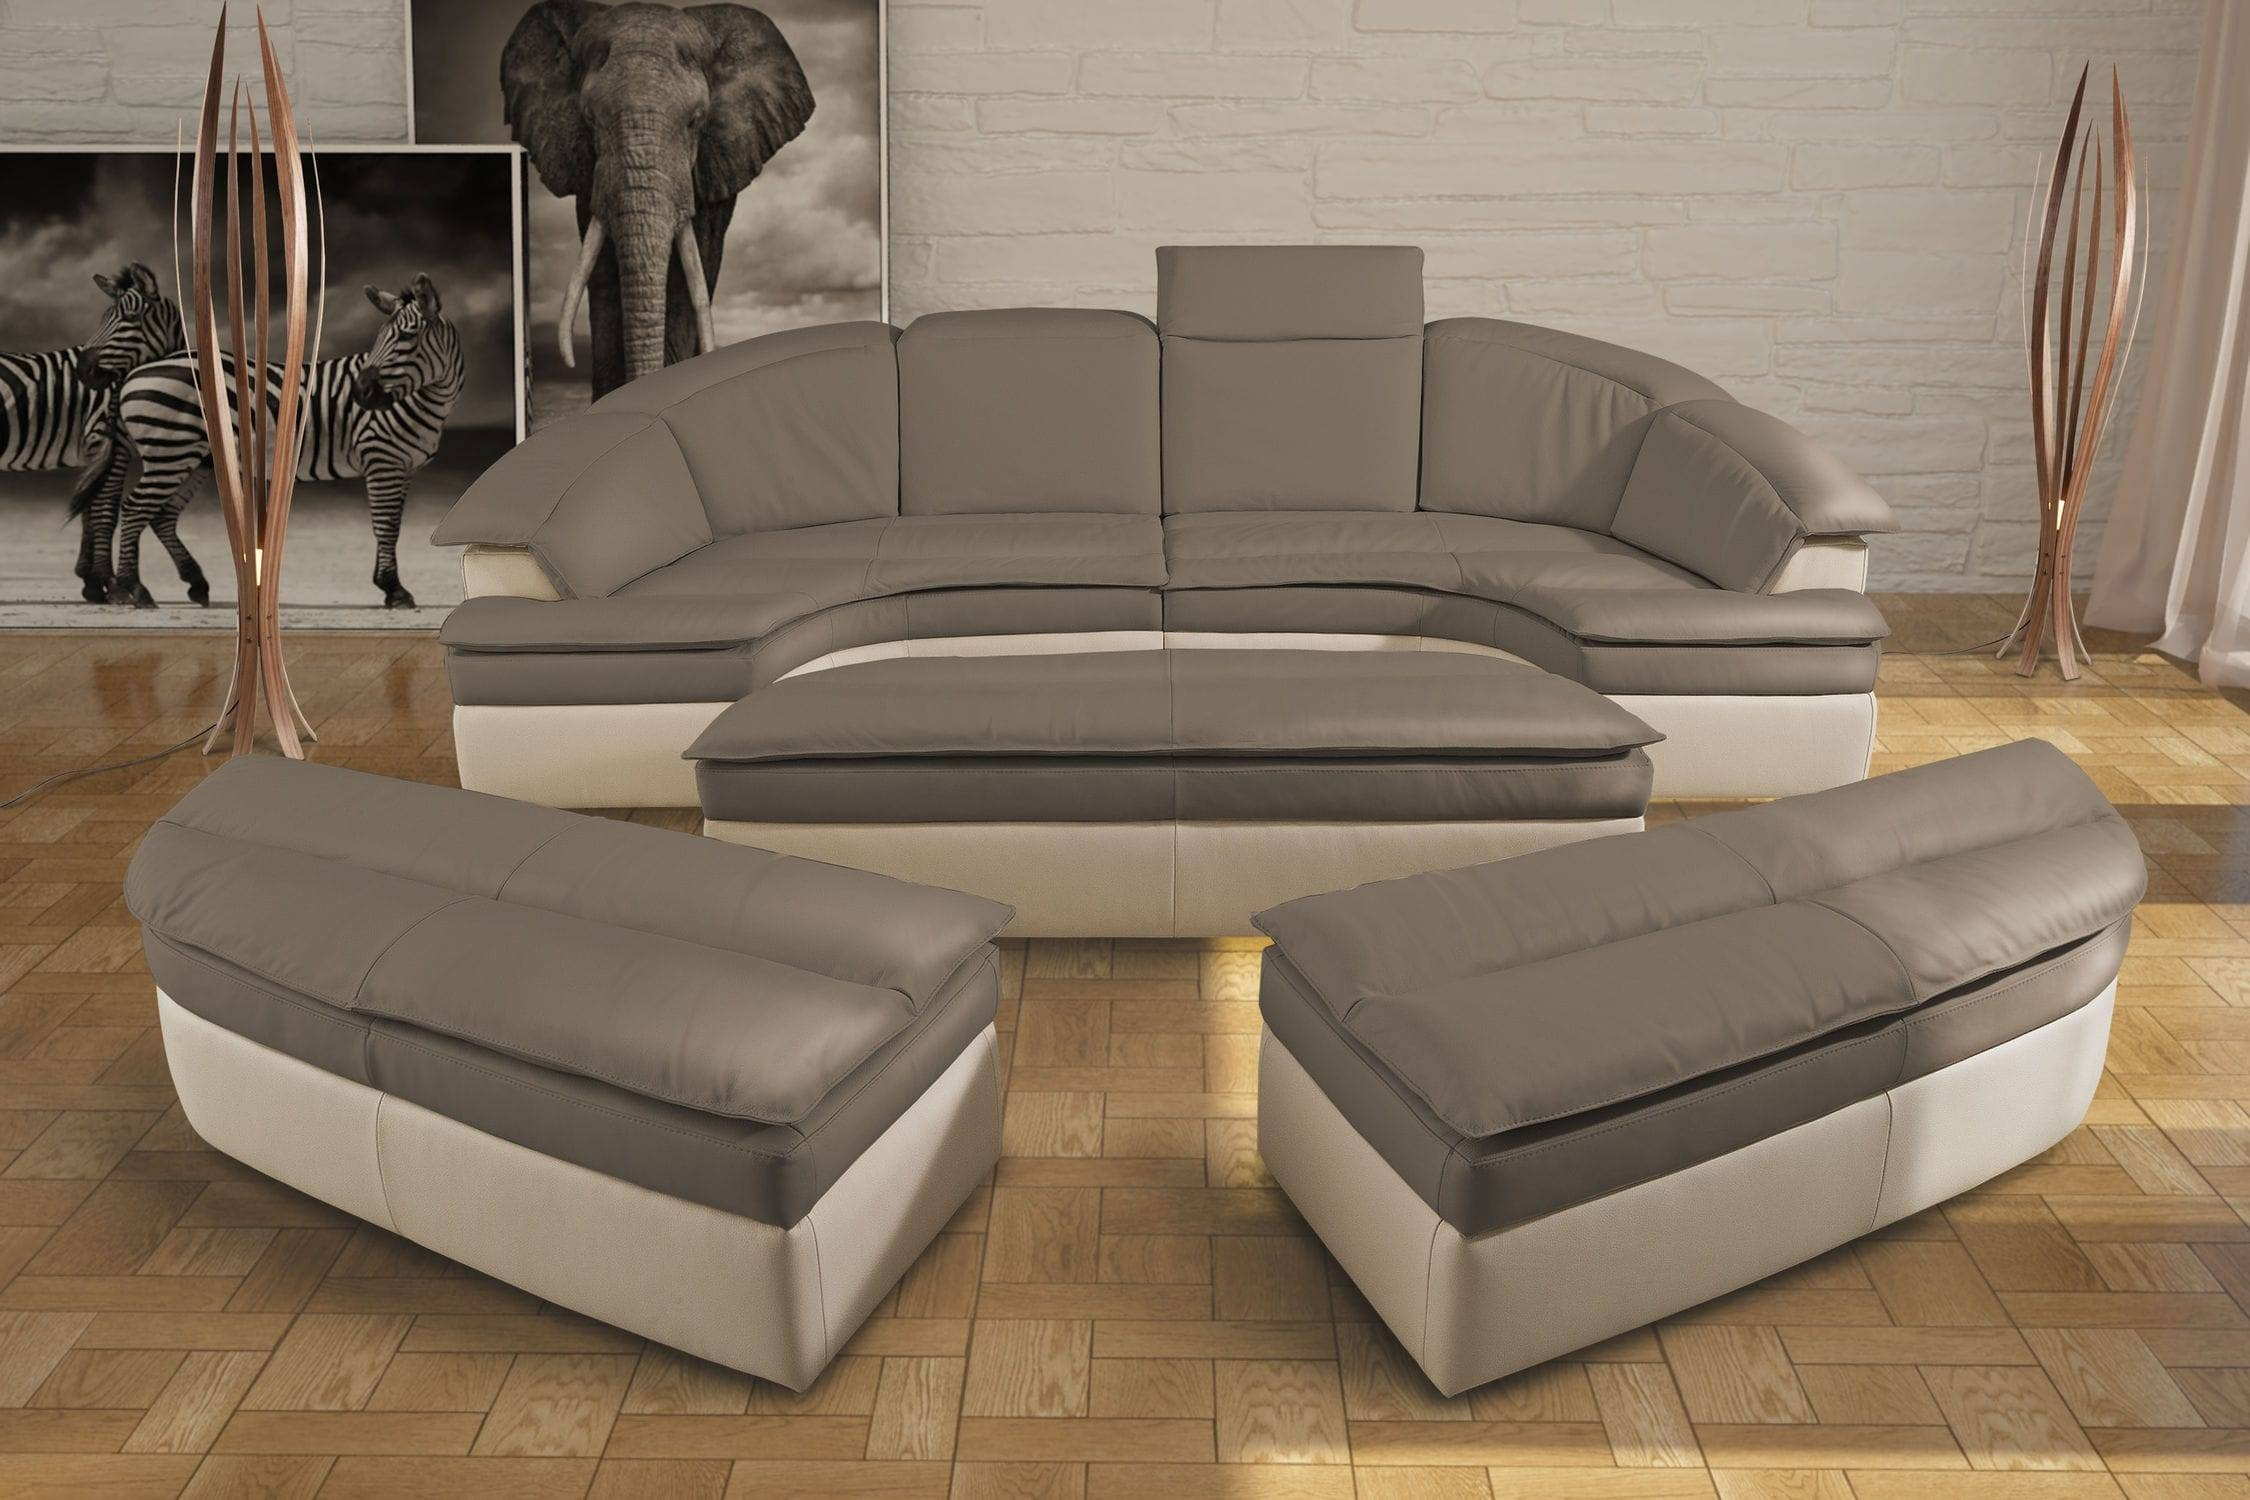 Modular Sofa / Semicircular / Contemporary / Leather - Galaxy throughout Semicircular Sofa (Image 8 of 30)